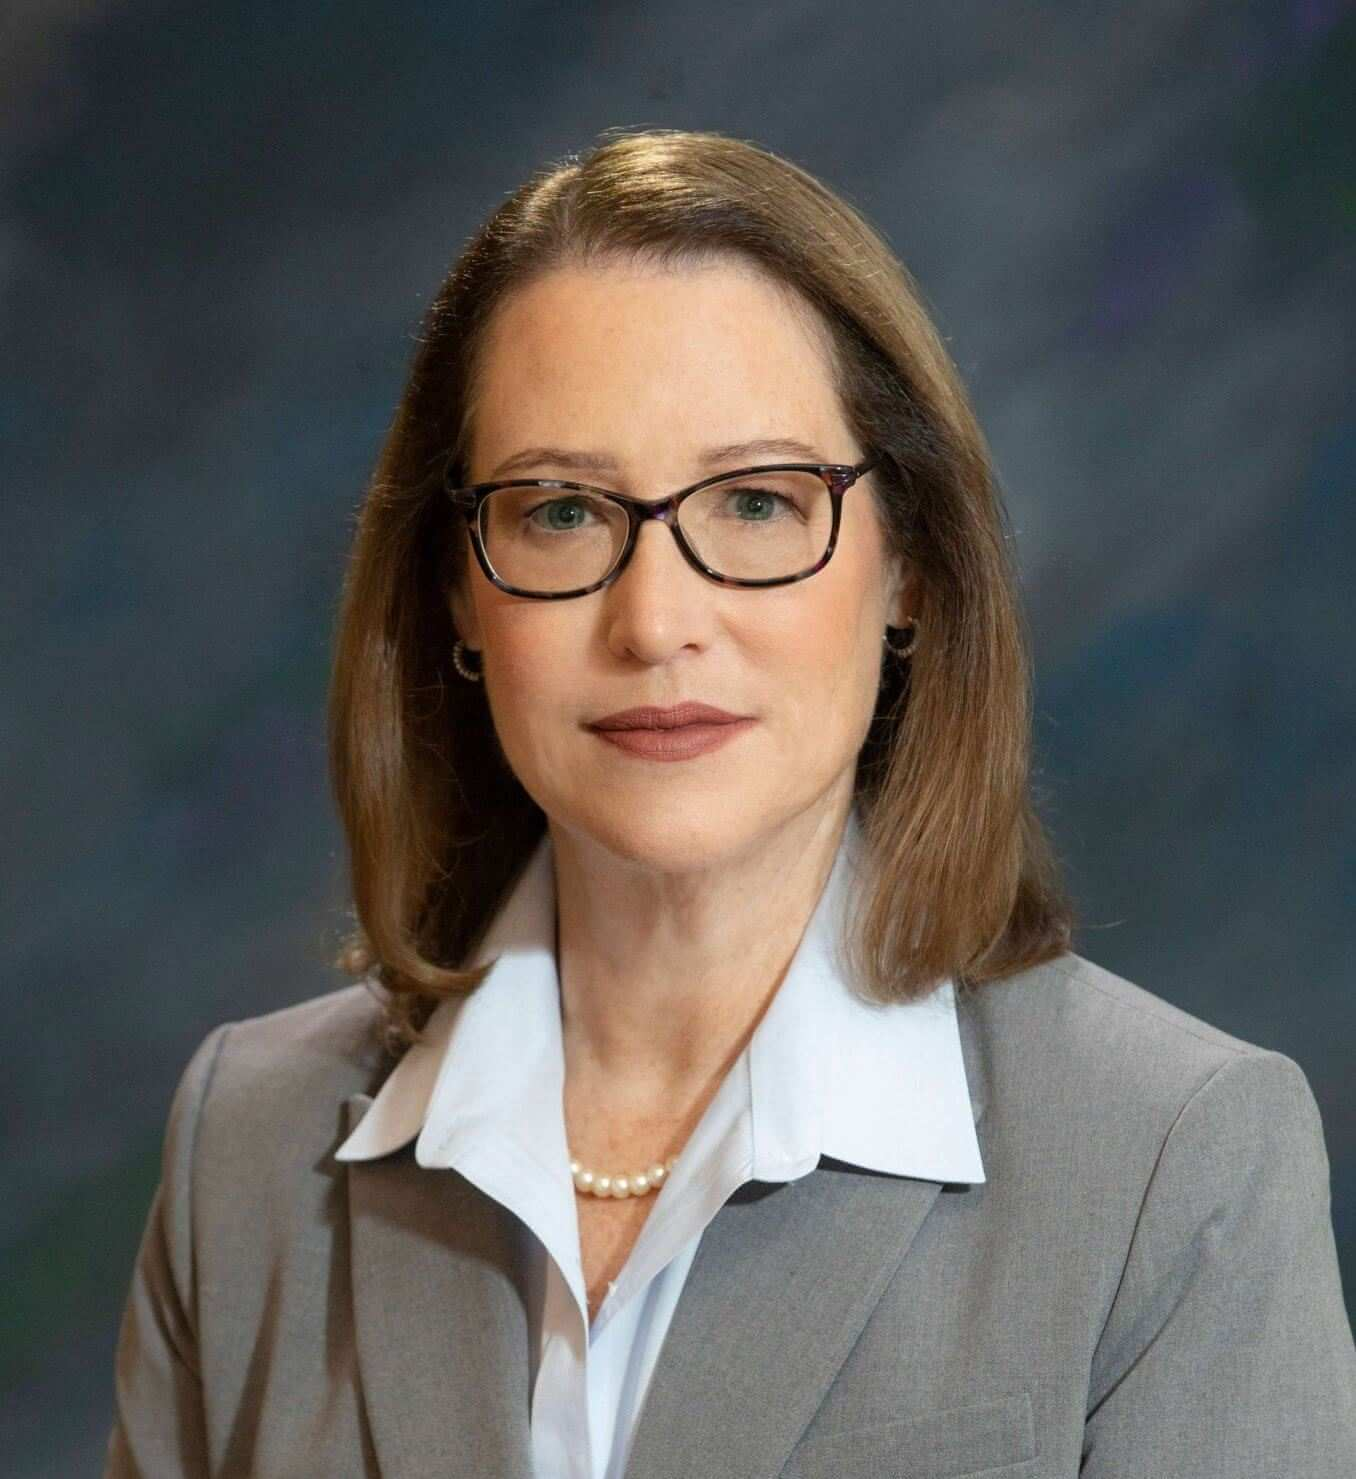 Jacqueline B. Stein, Esq. Hearing Officer for NAM (National Arbitration and Mediation)